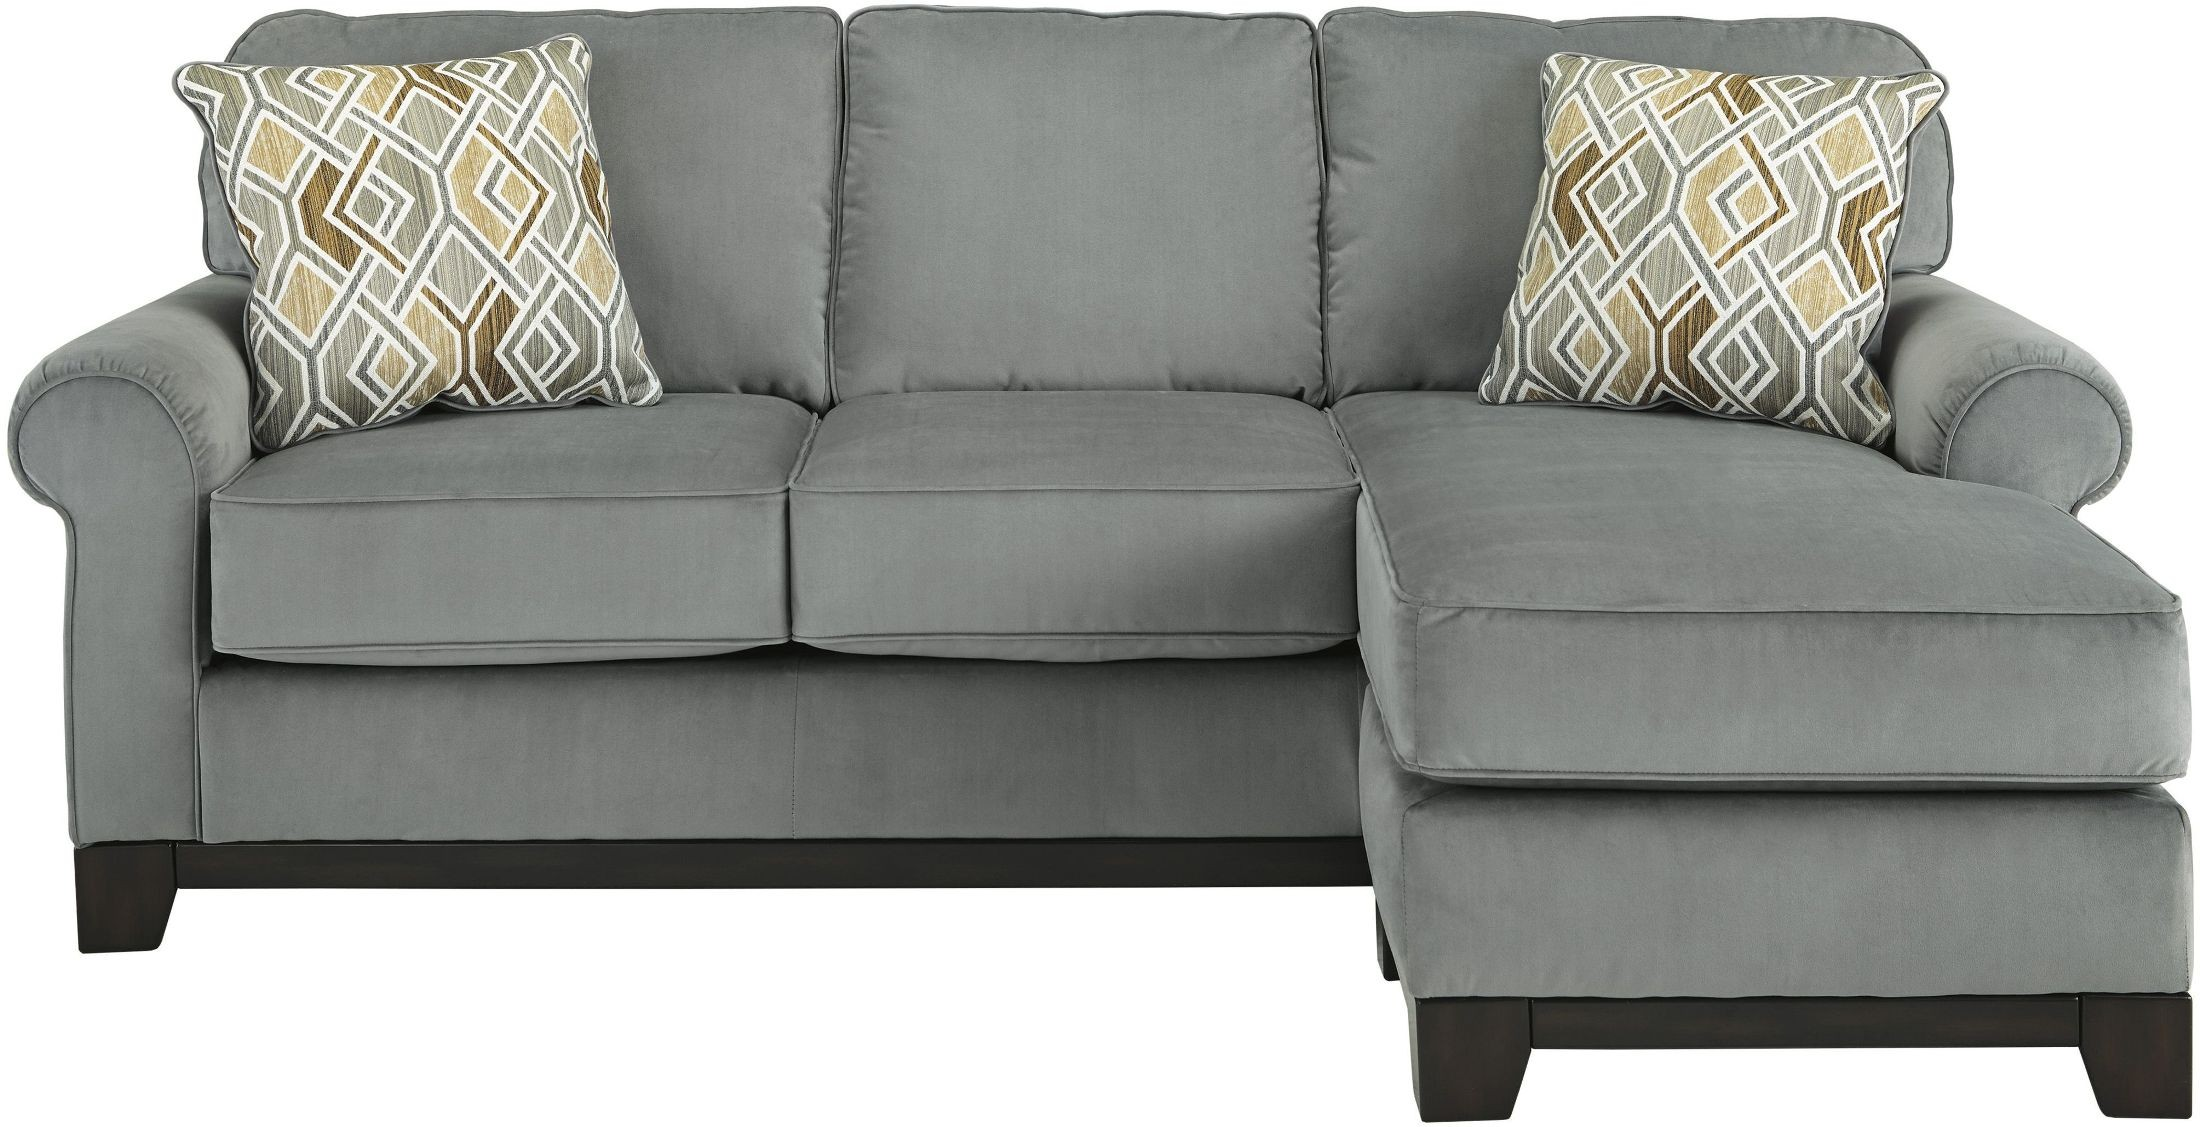 Ashley benld sofa chaise dallas tx living room sofa for Ashley furniture sectional with chaise